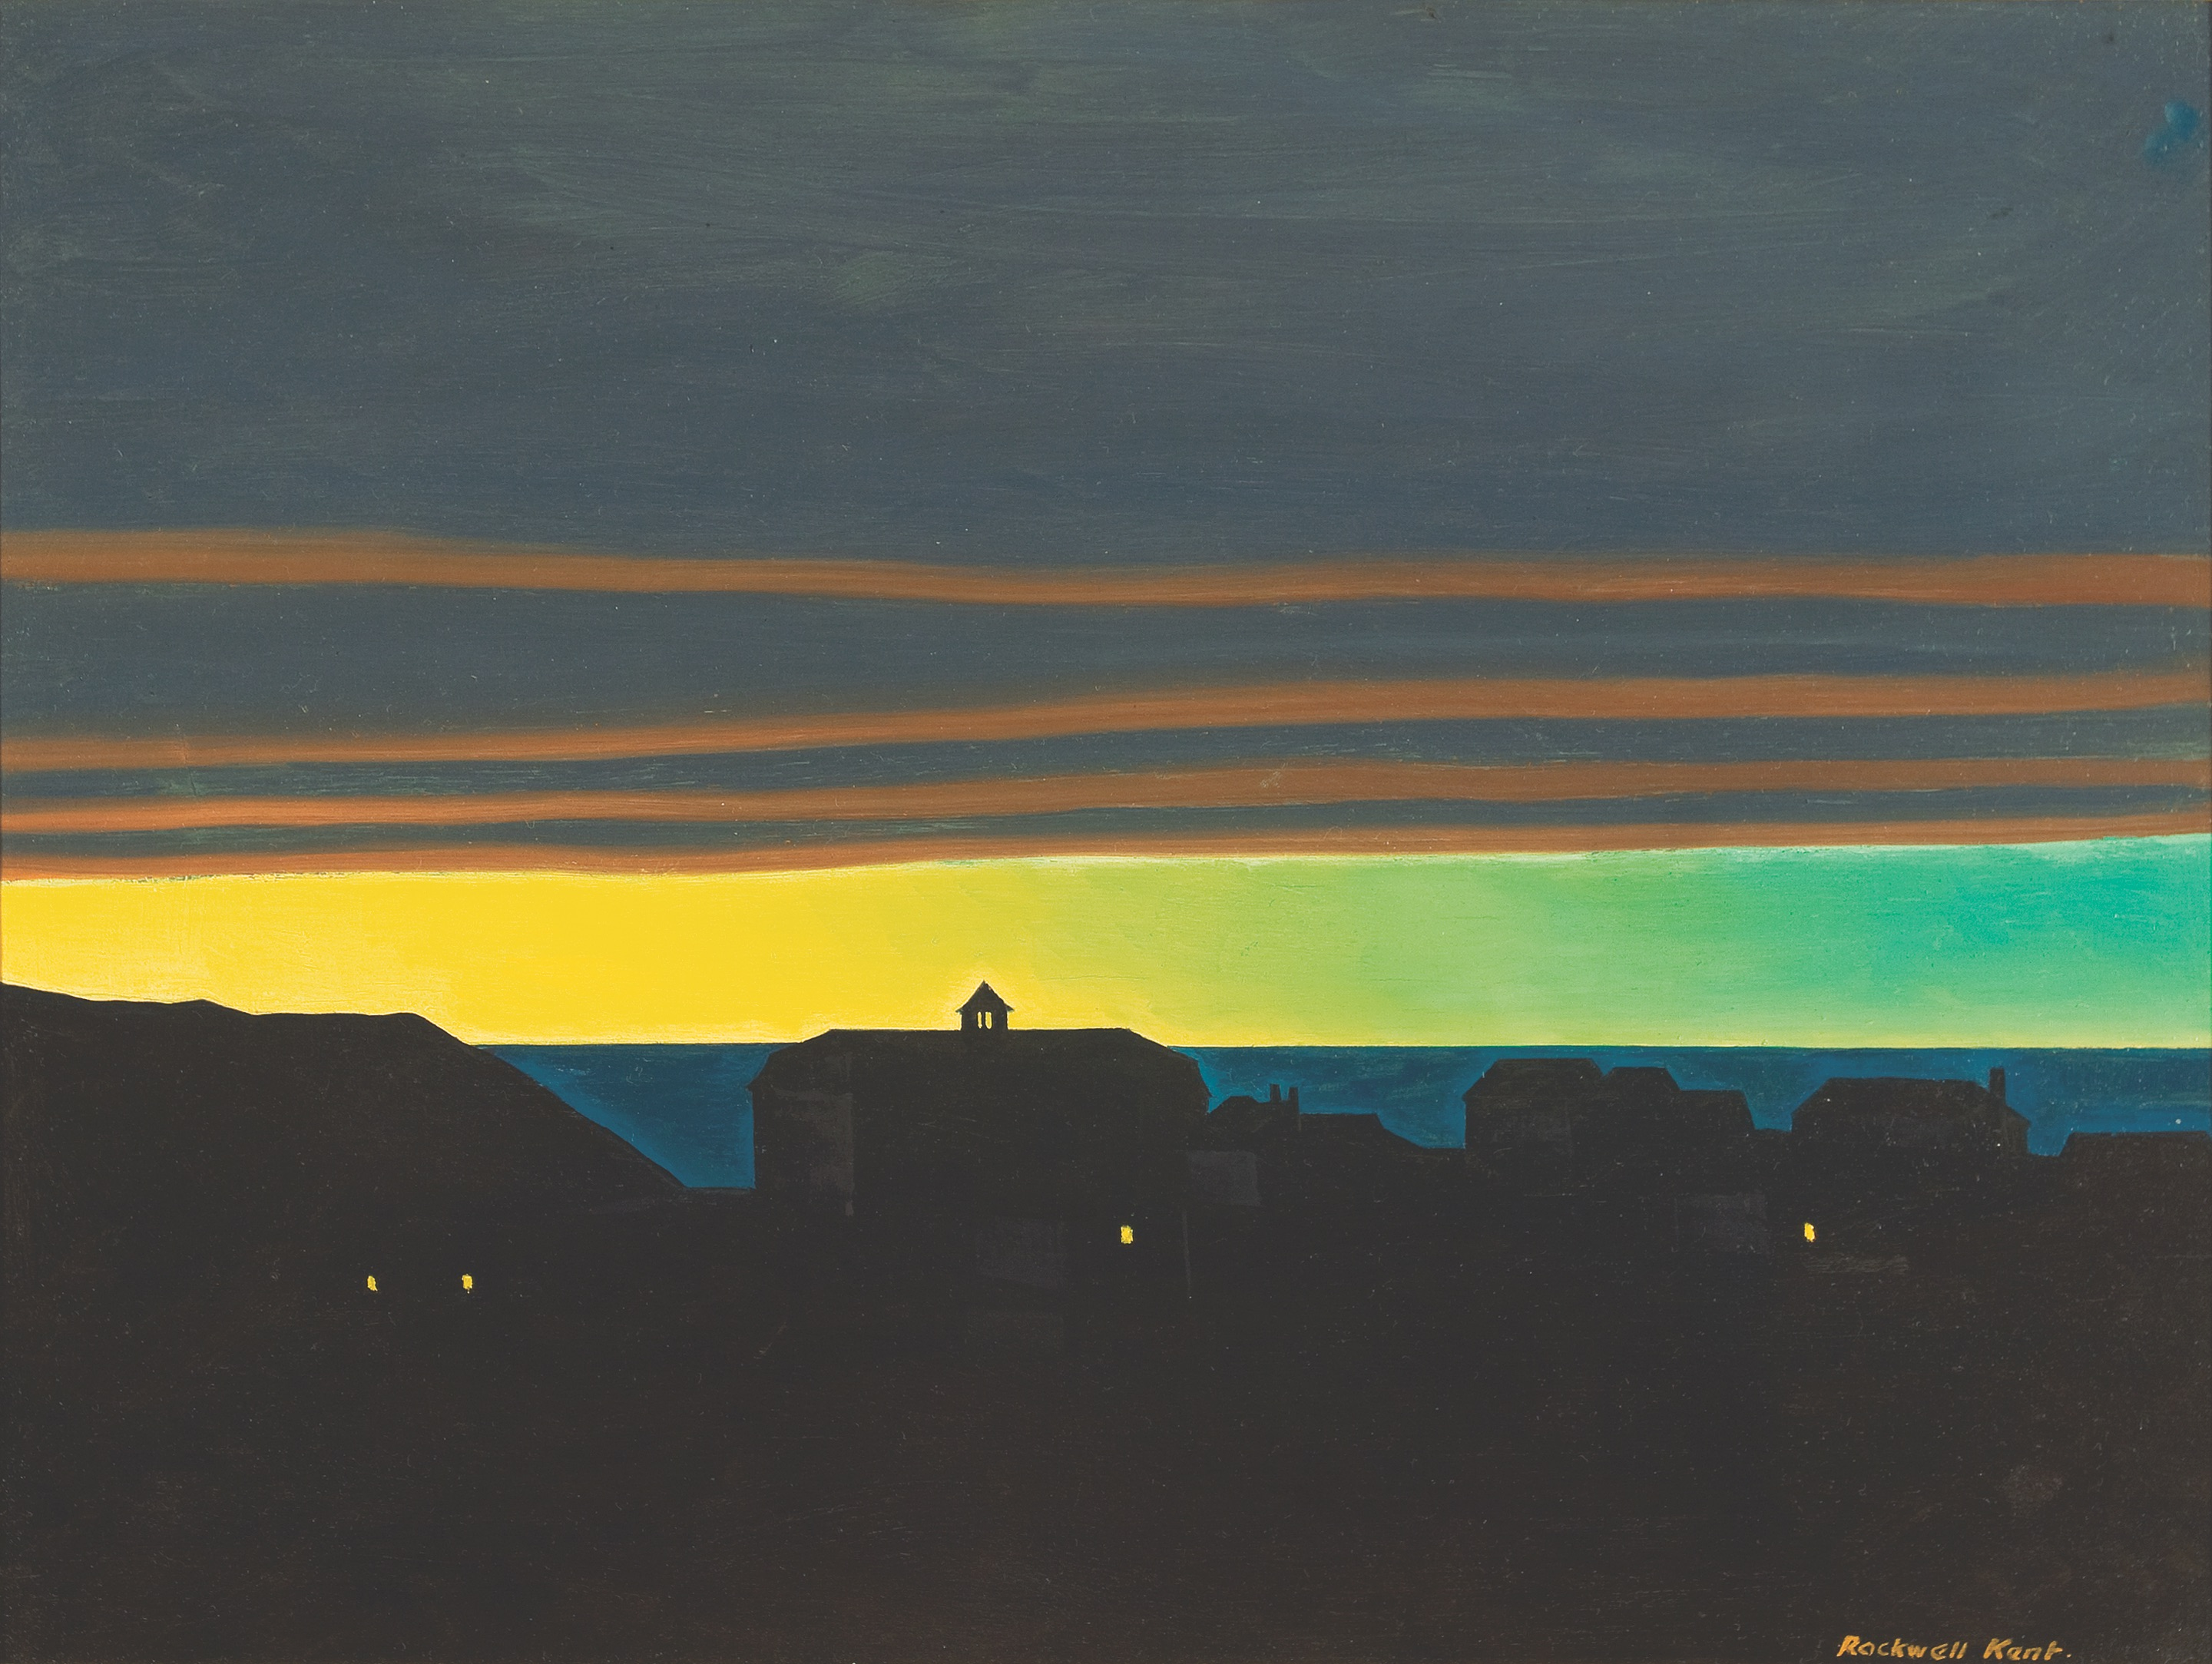 Rockwell Kent painted on Monhegan Island, Maine